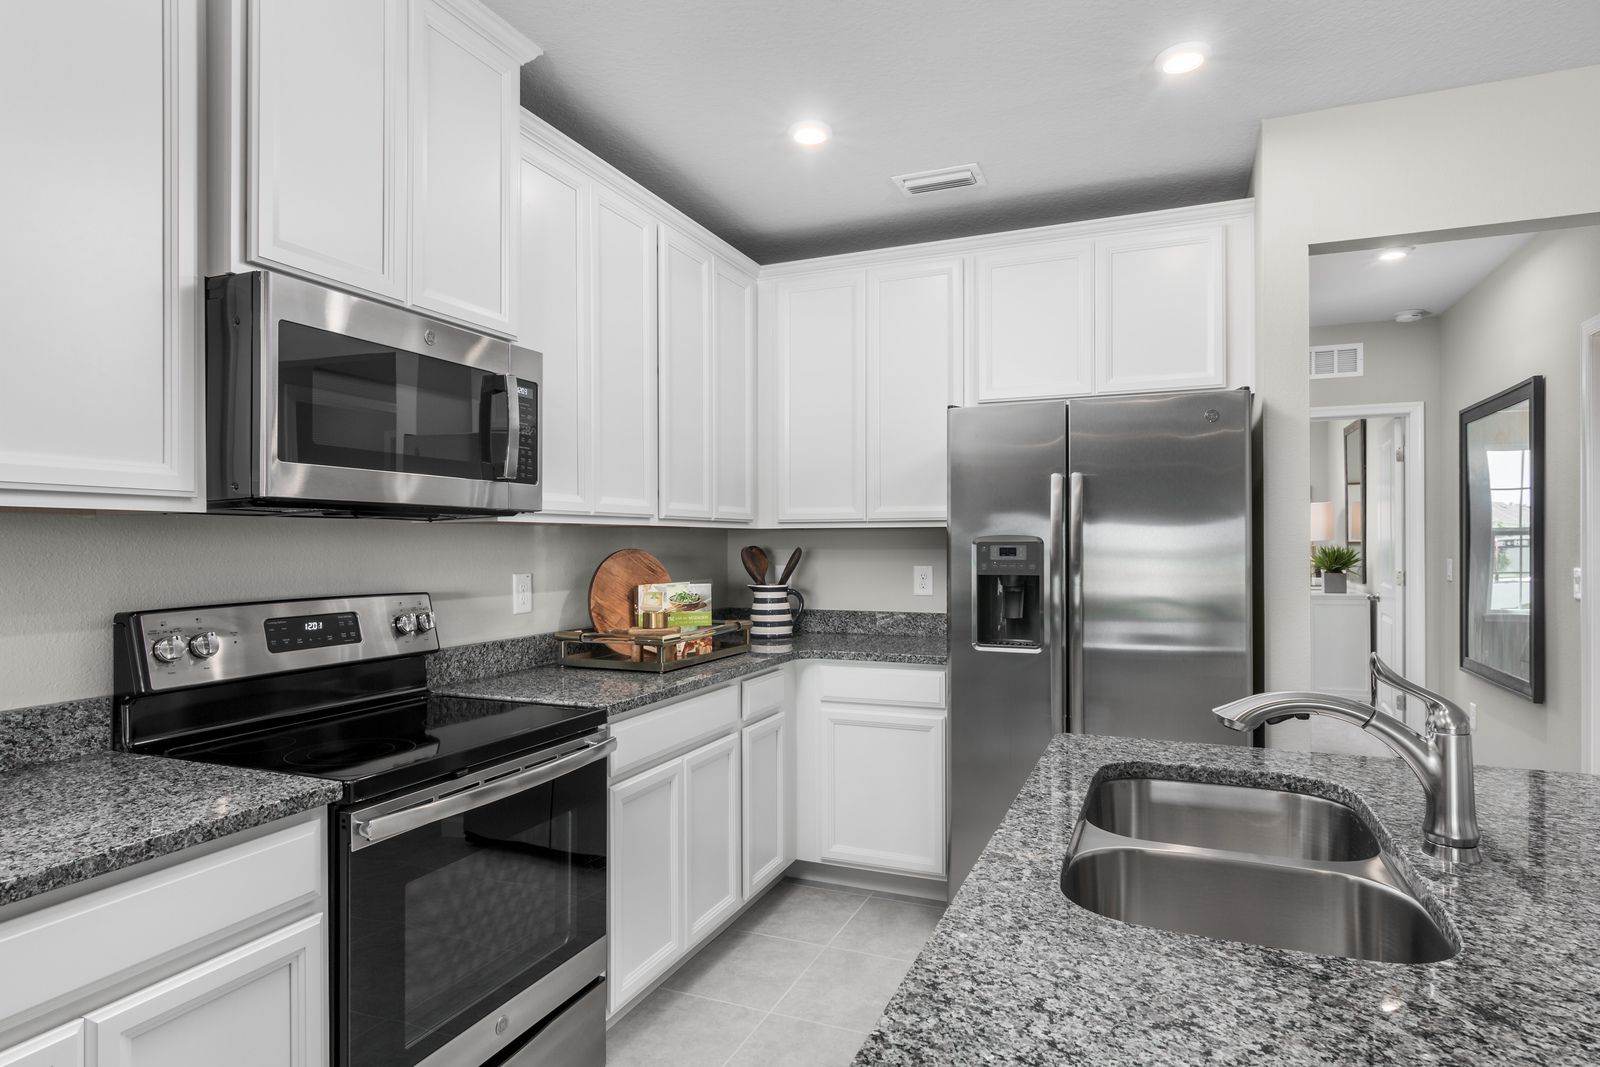 Kitchen featured in the Magnolia-Woodland By Ryan Homes in Tampa-St. Petersburg, FL